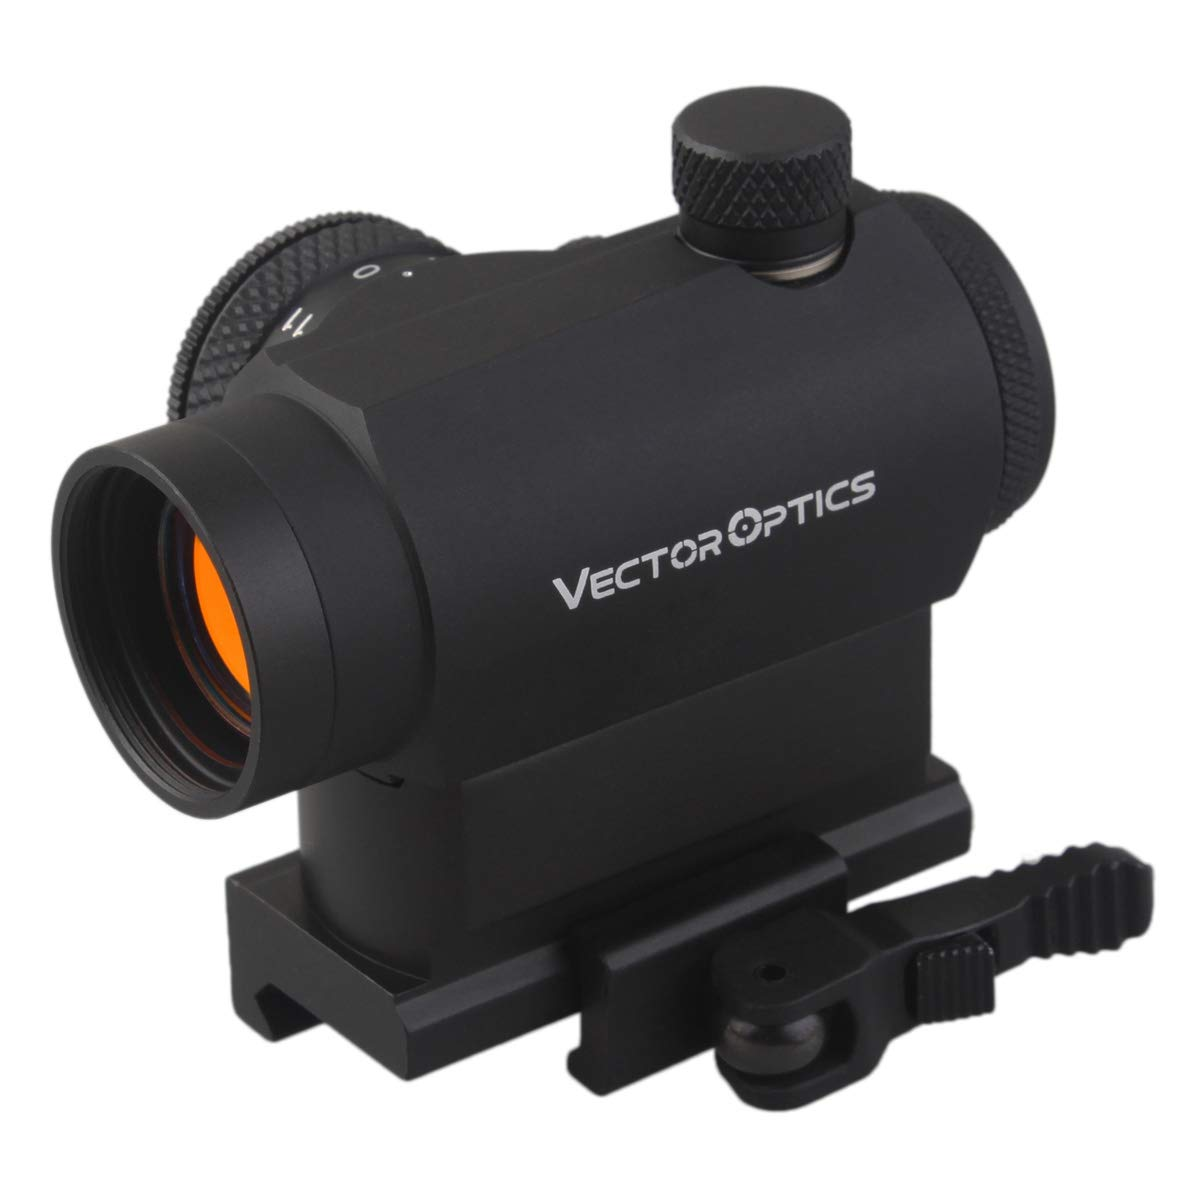 TAC Vector Optics Maverick 1x22 T-1 Tactical Compact Red Dot Sight Scope with Quick Release QD Mount for Rifles Handguns Airsoft Color Black